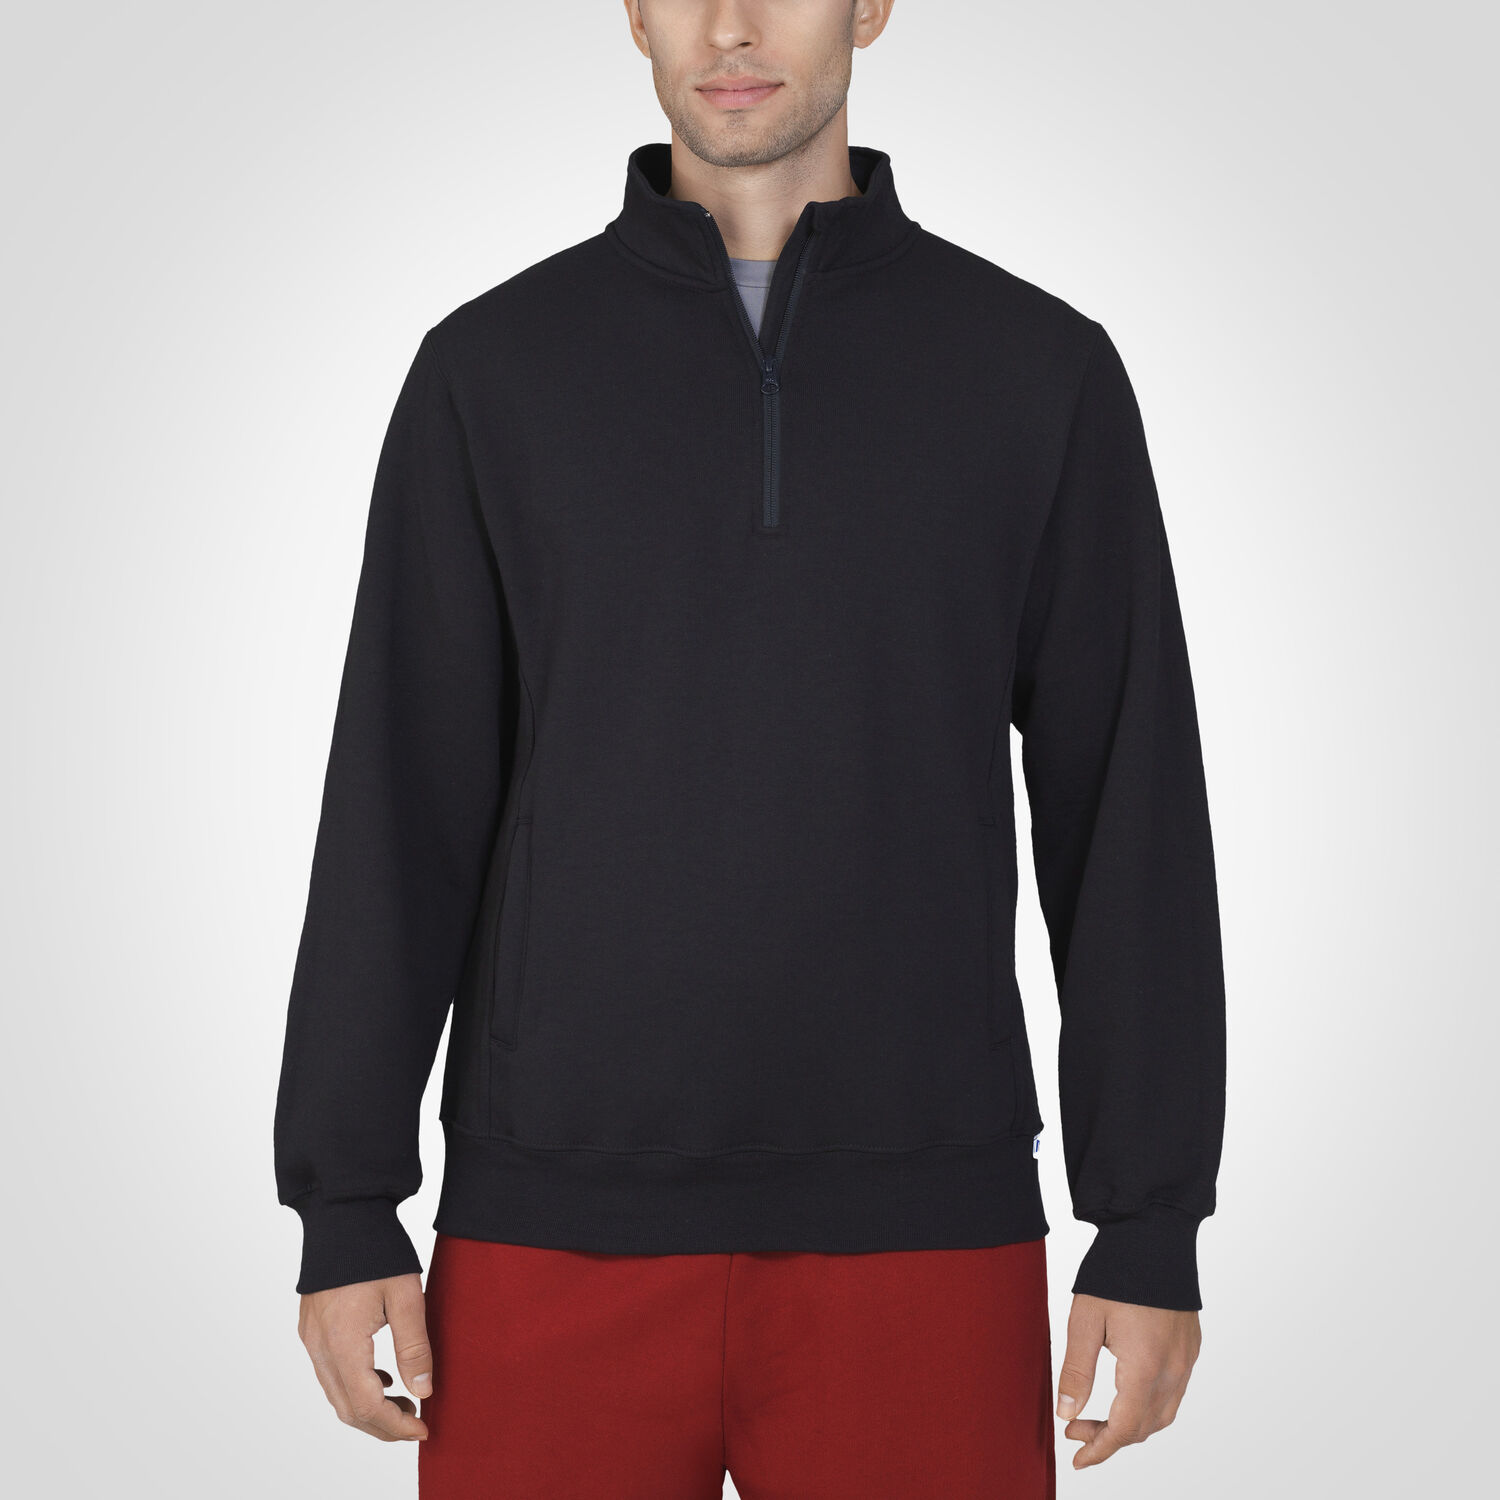 Men's Dri-Power® Fleece 1/4 Zip Pullover - Russell US | Russell ...